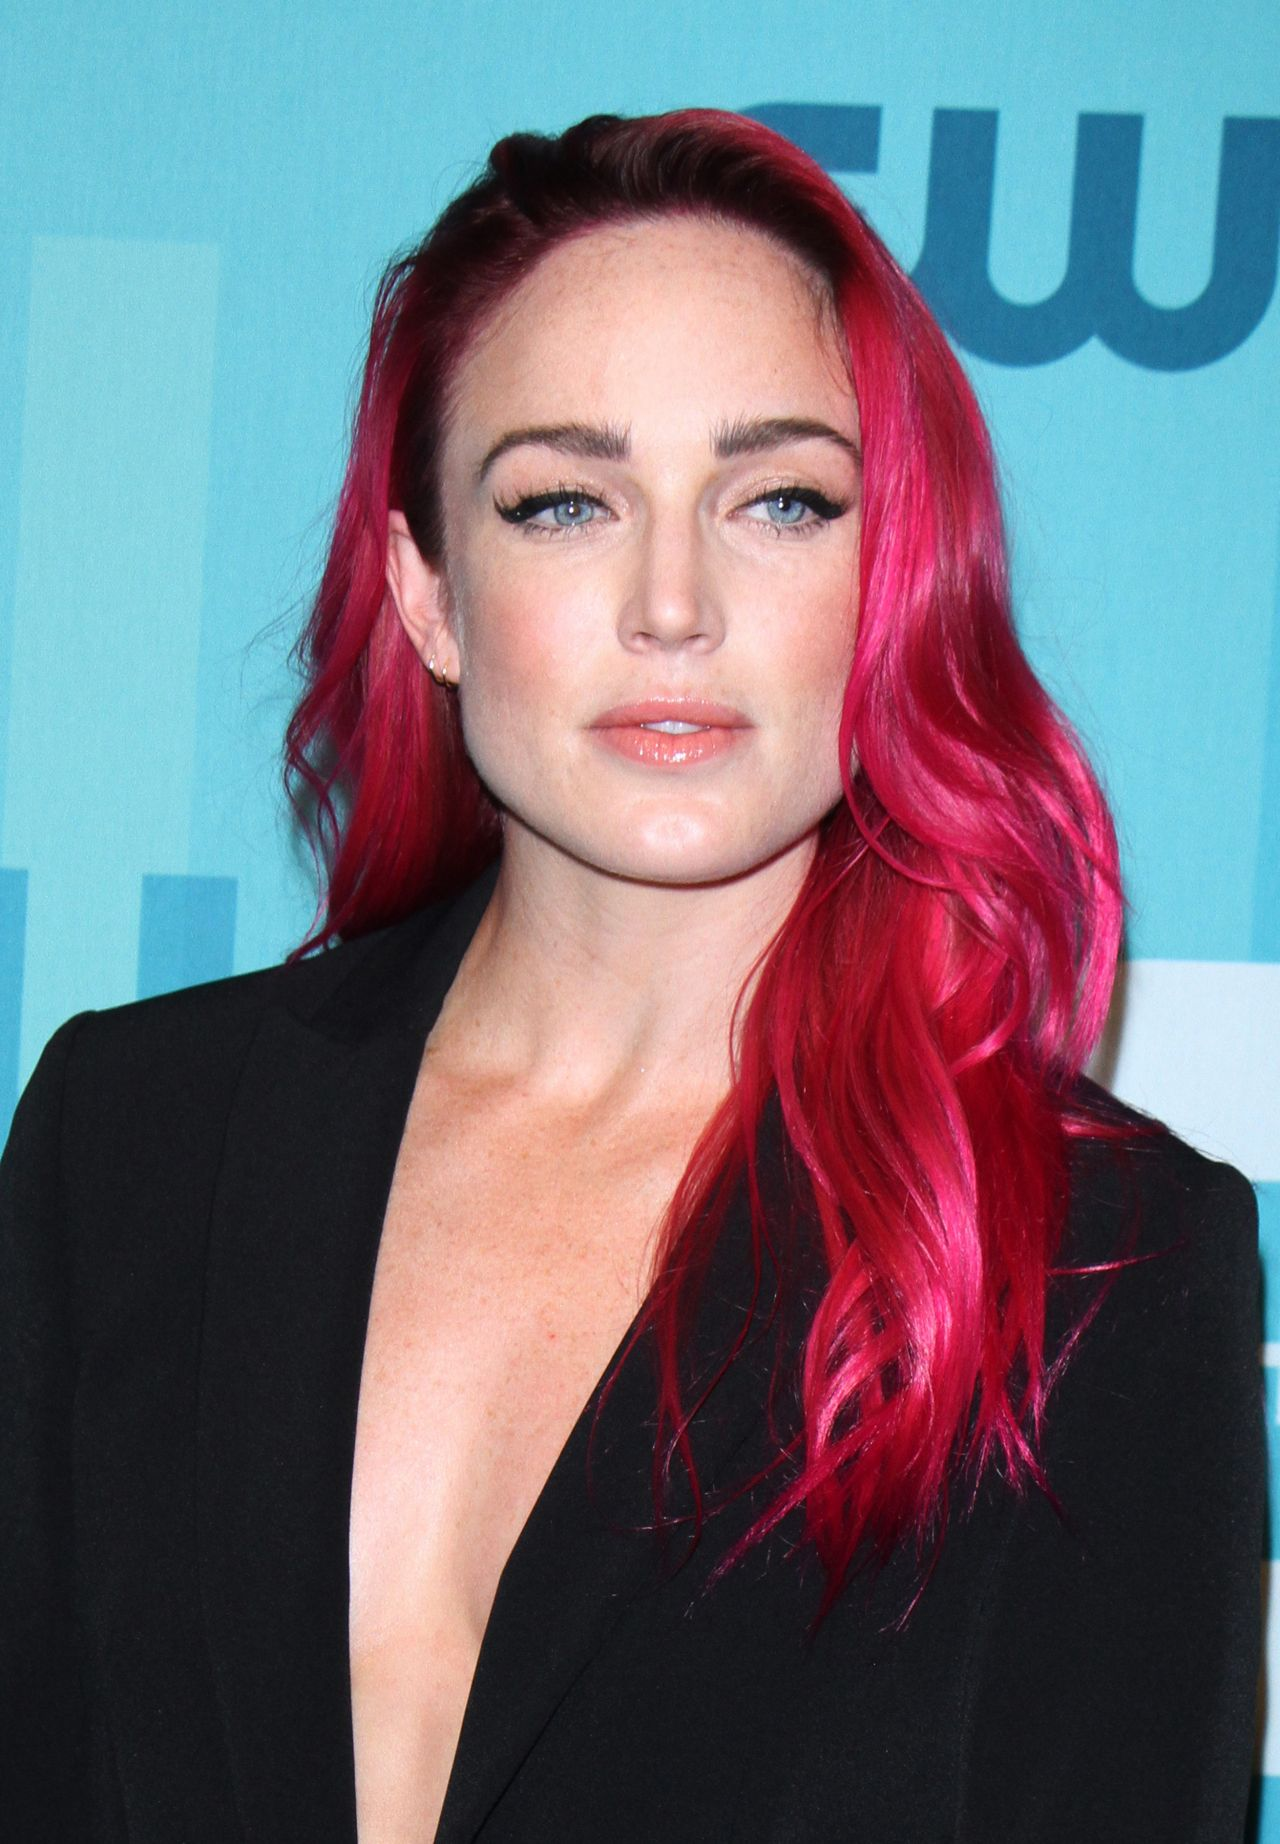 Pink Fall Wallpaper Caity Lotz The Cw Network S Upfront In New York City 05